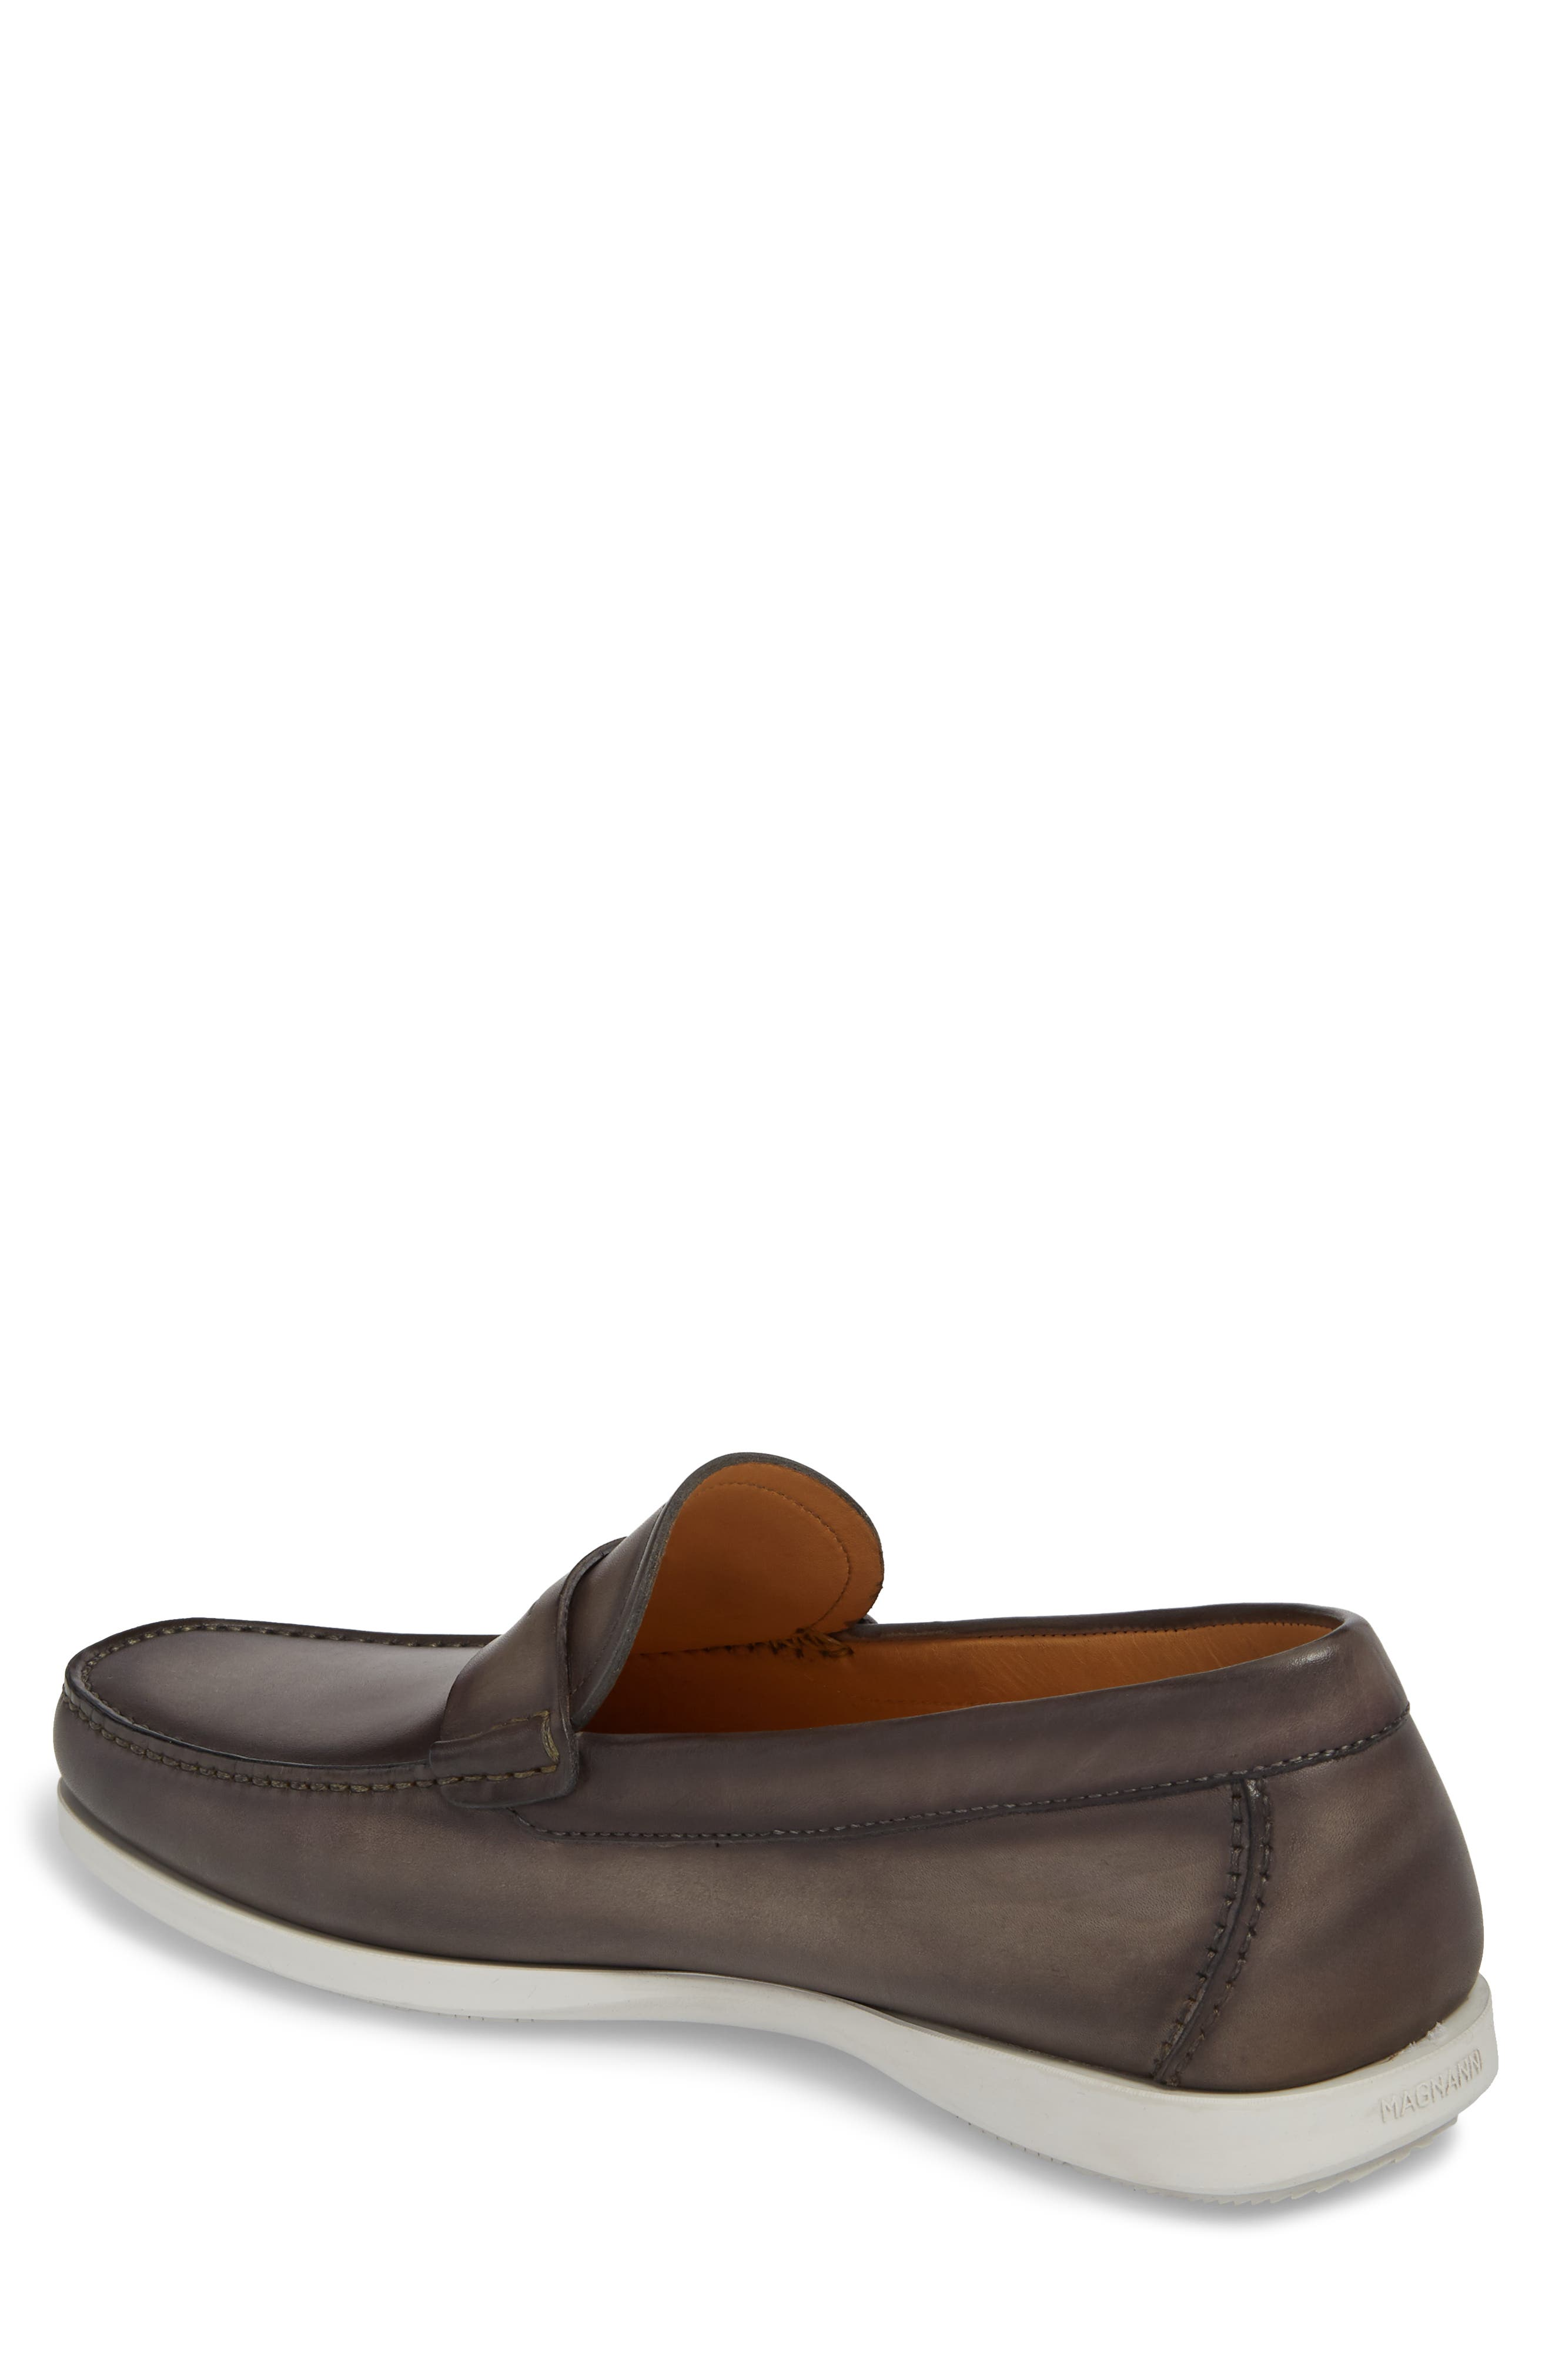 Laguna Penny Loafer,                             Alternate thumbnail 2, color,                             Grey Leather